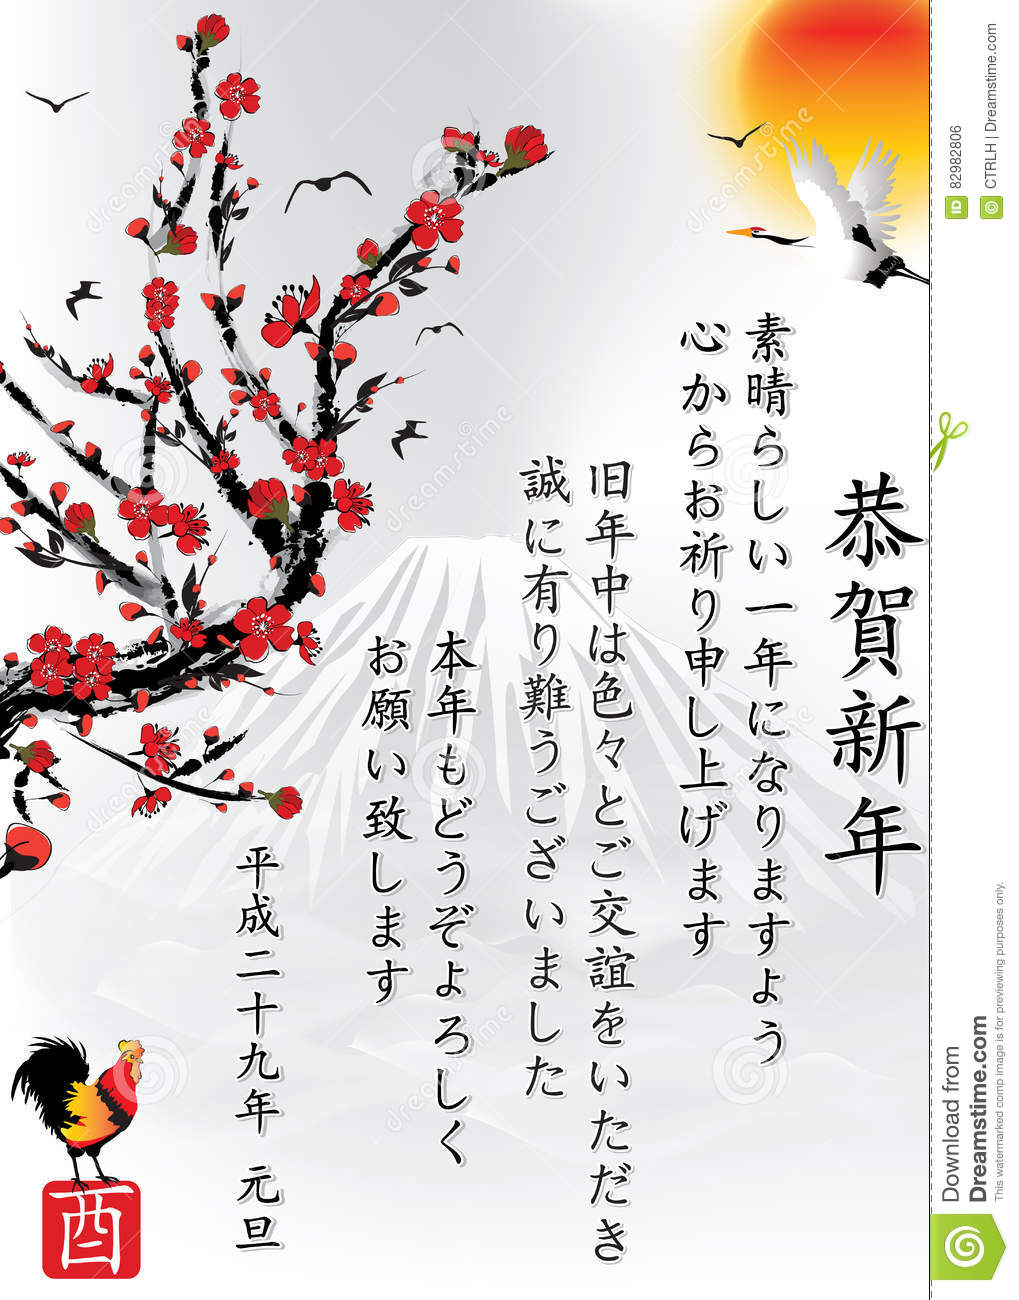 Business japanese new year 2017 greeting card stock illustration business japanese new year 2017 greeting card cherry sign m4hsunfo